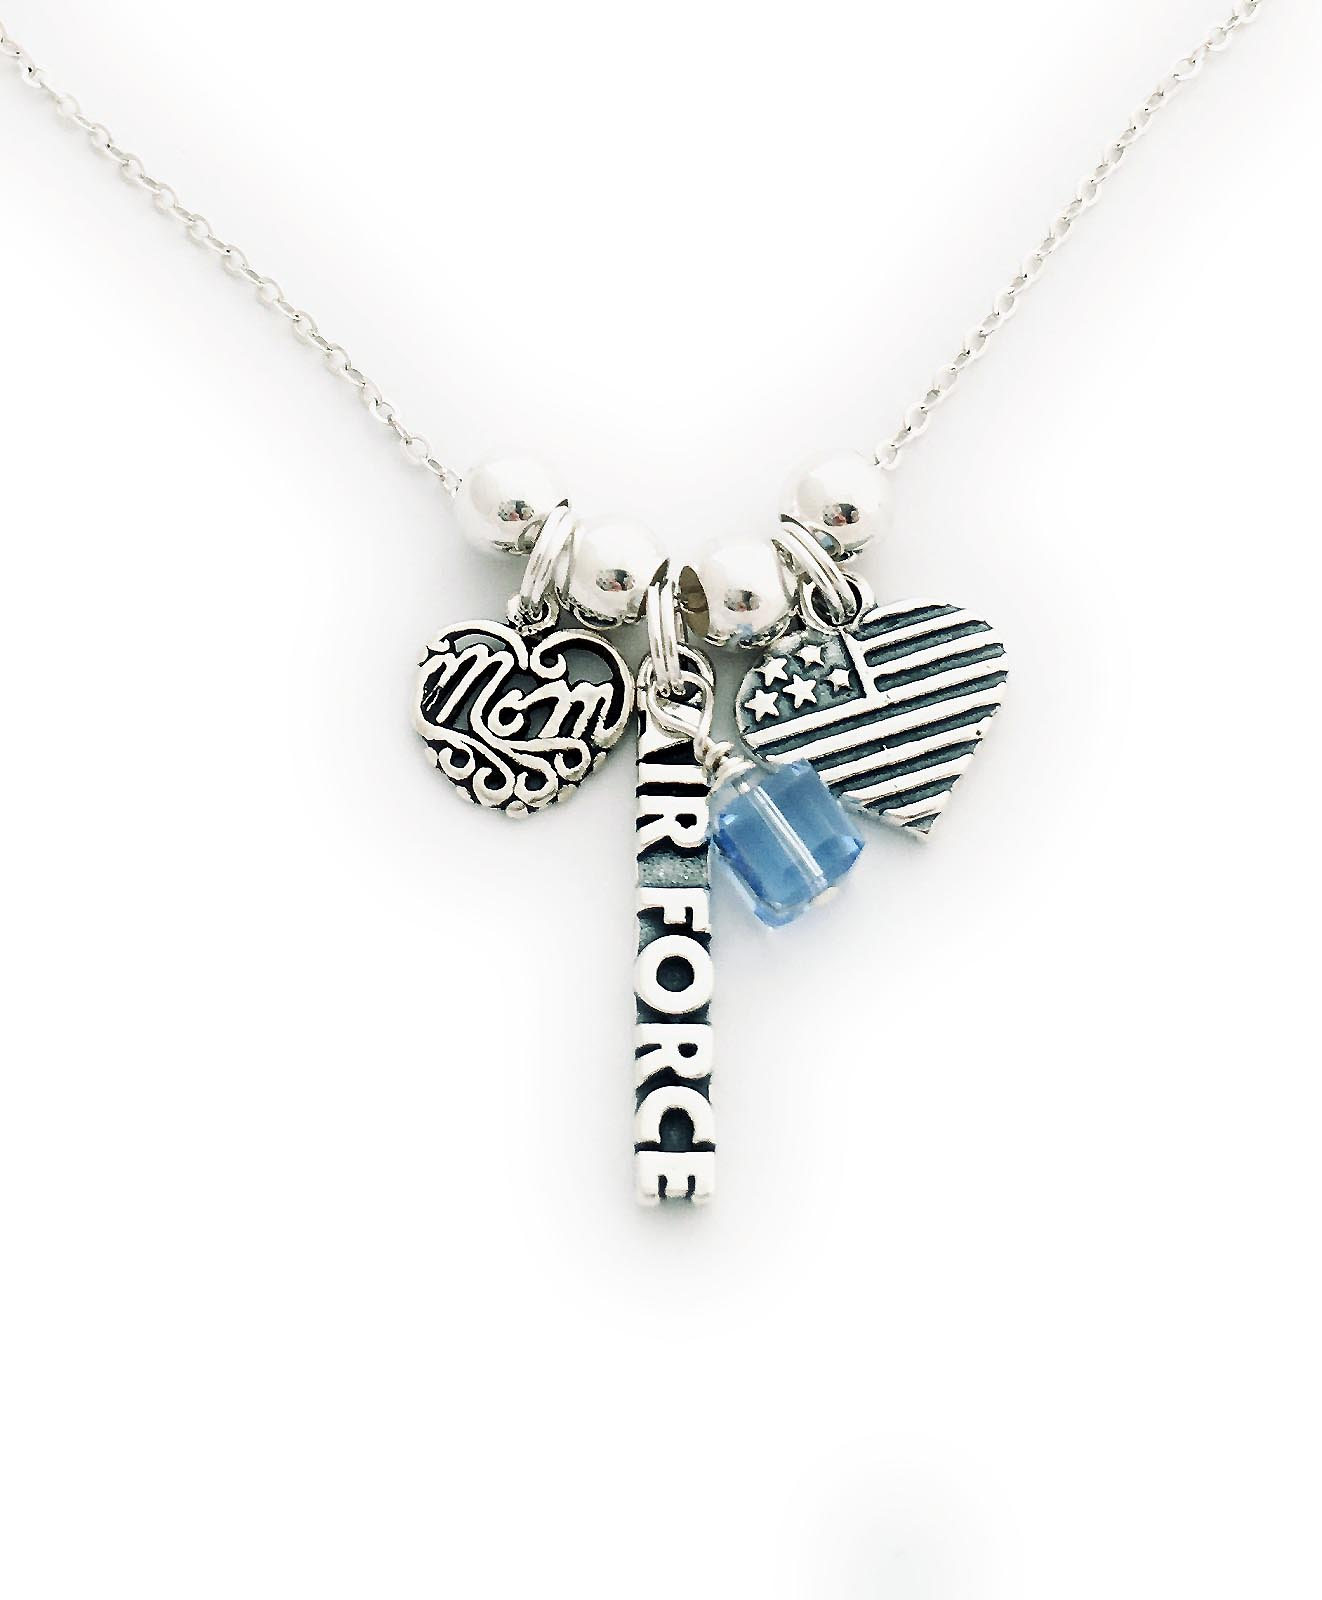 JBL-USA-N8 Air Force Mom Charm Necklace shown with an add-on December Birthstone Charm.